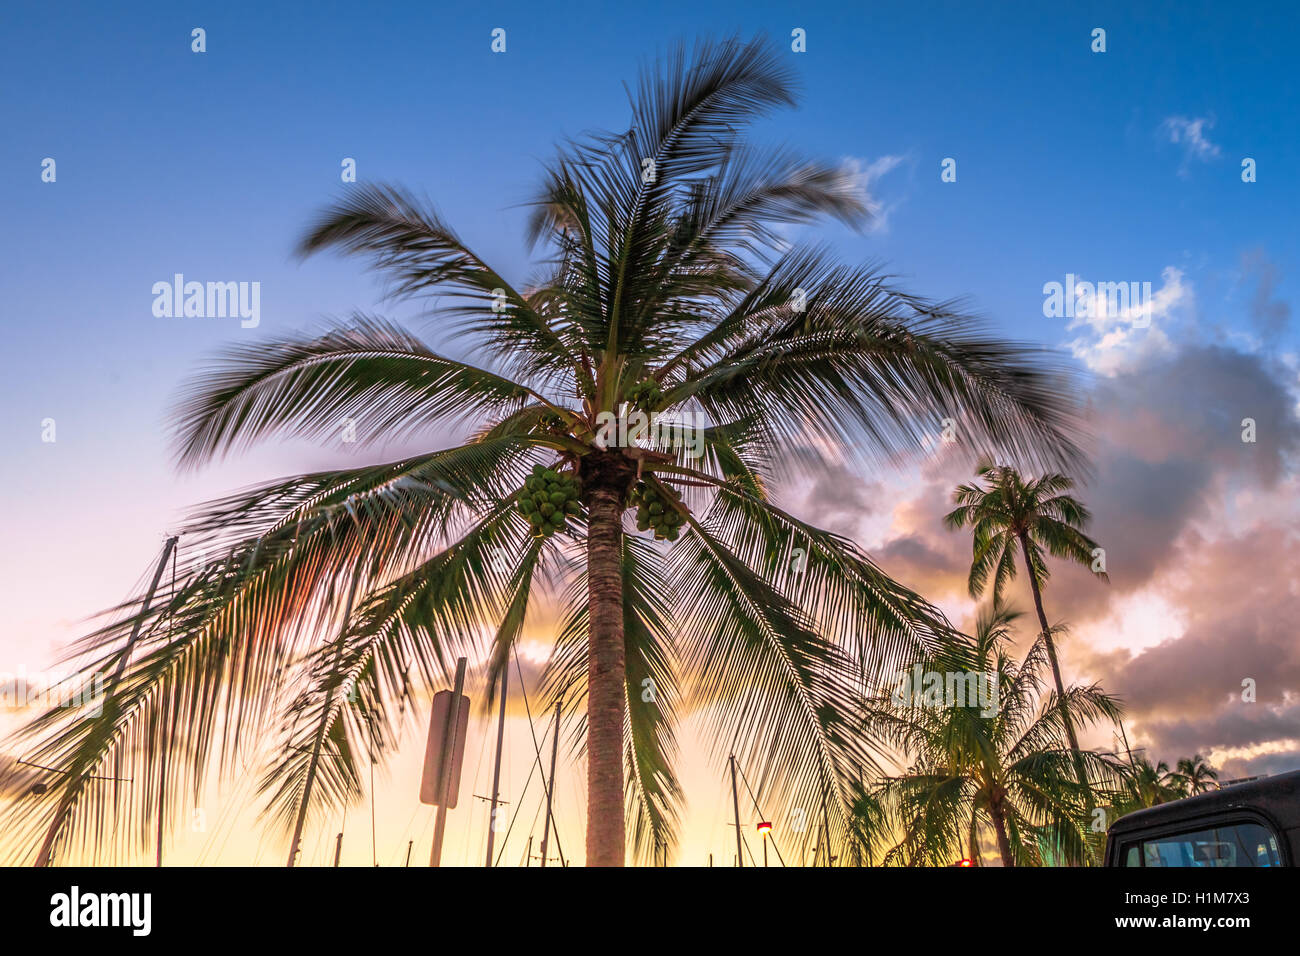 Coconut palm trees - Stock Image